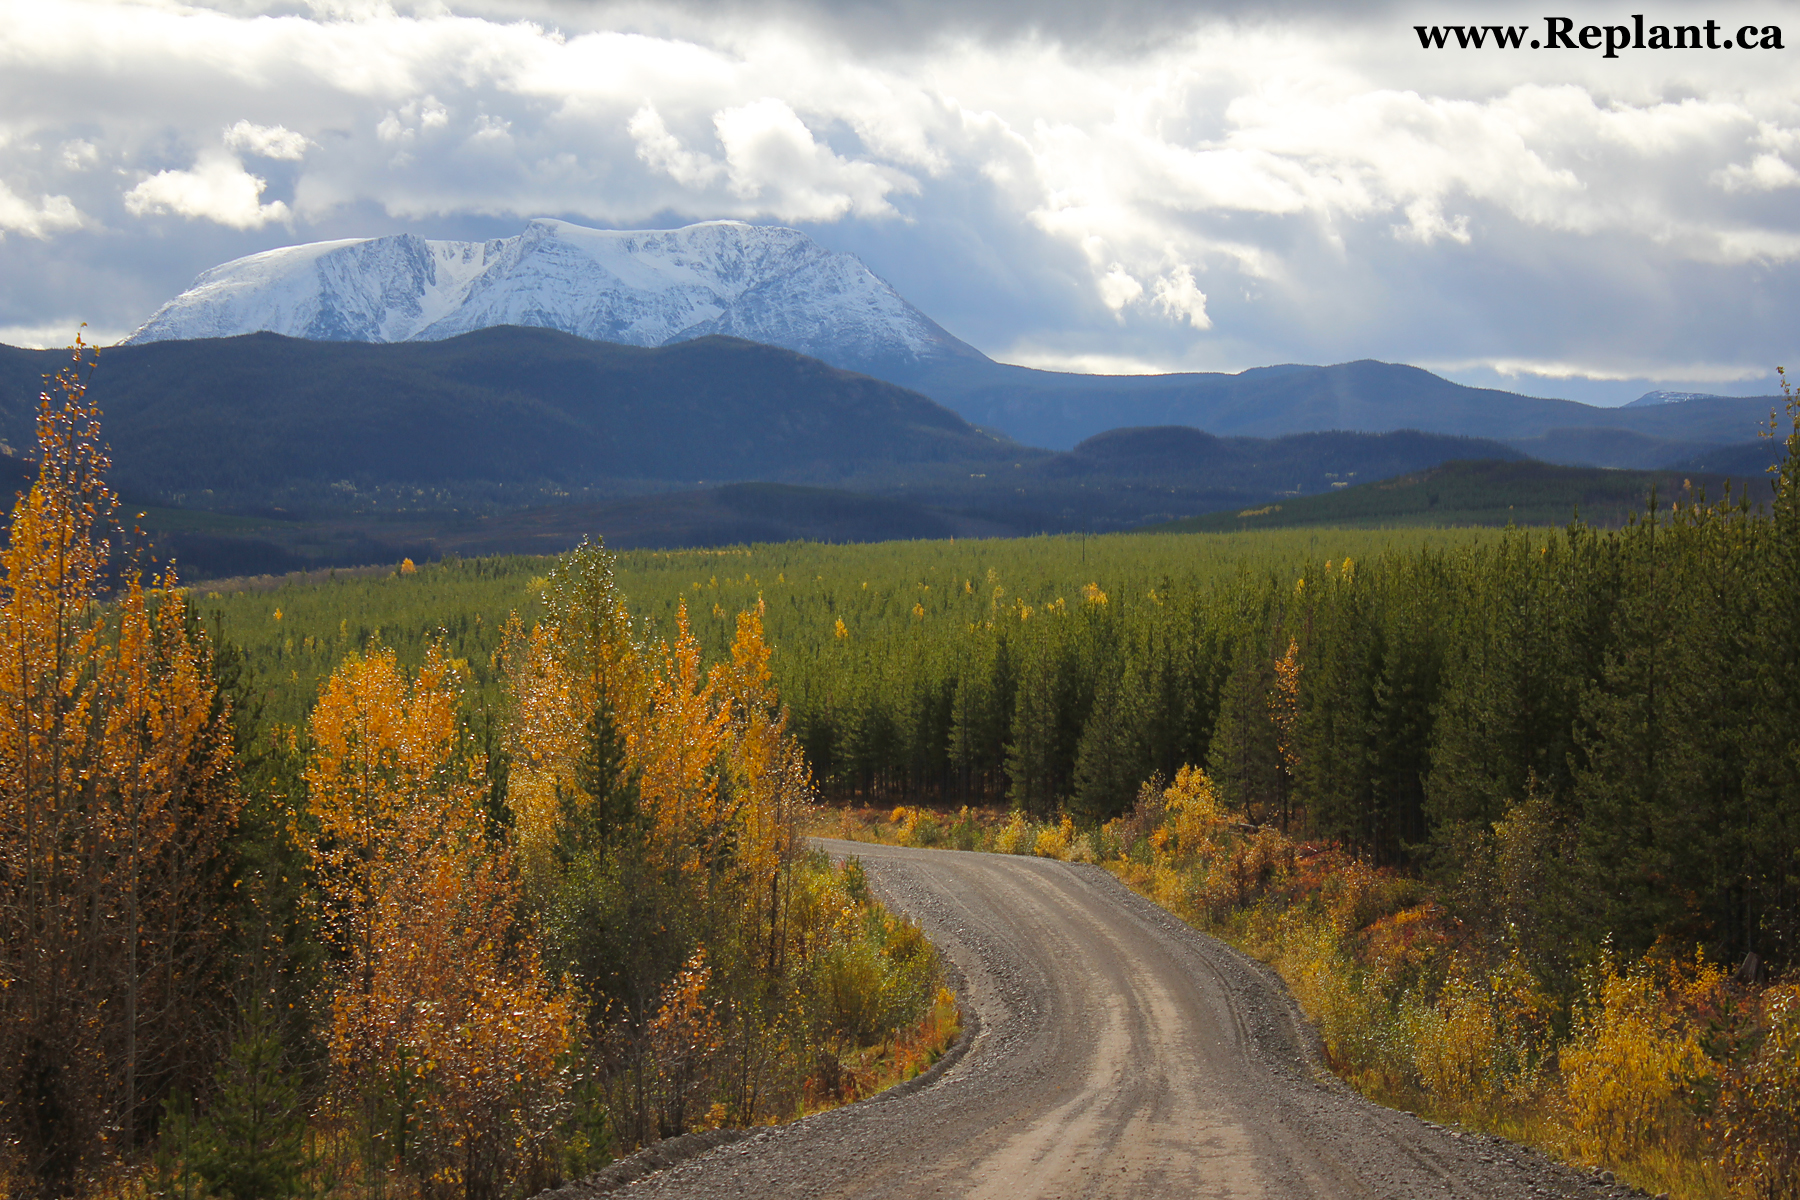 Replant Ca A Website Devoted To Canadian Reforestation